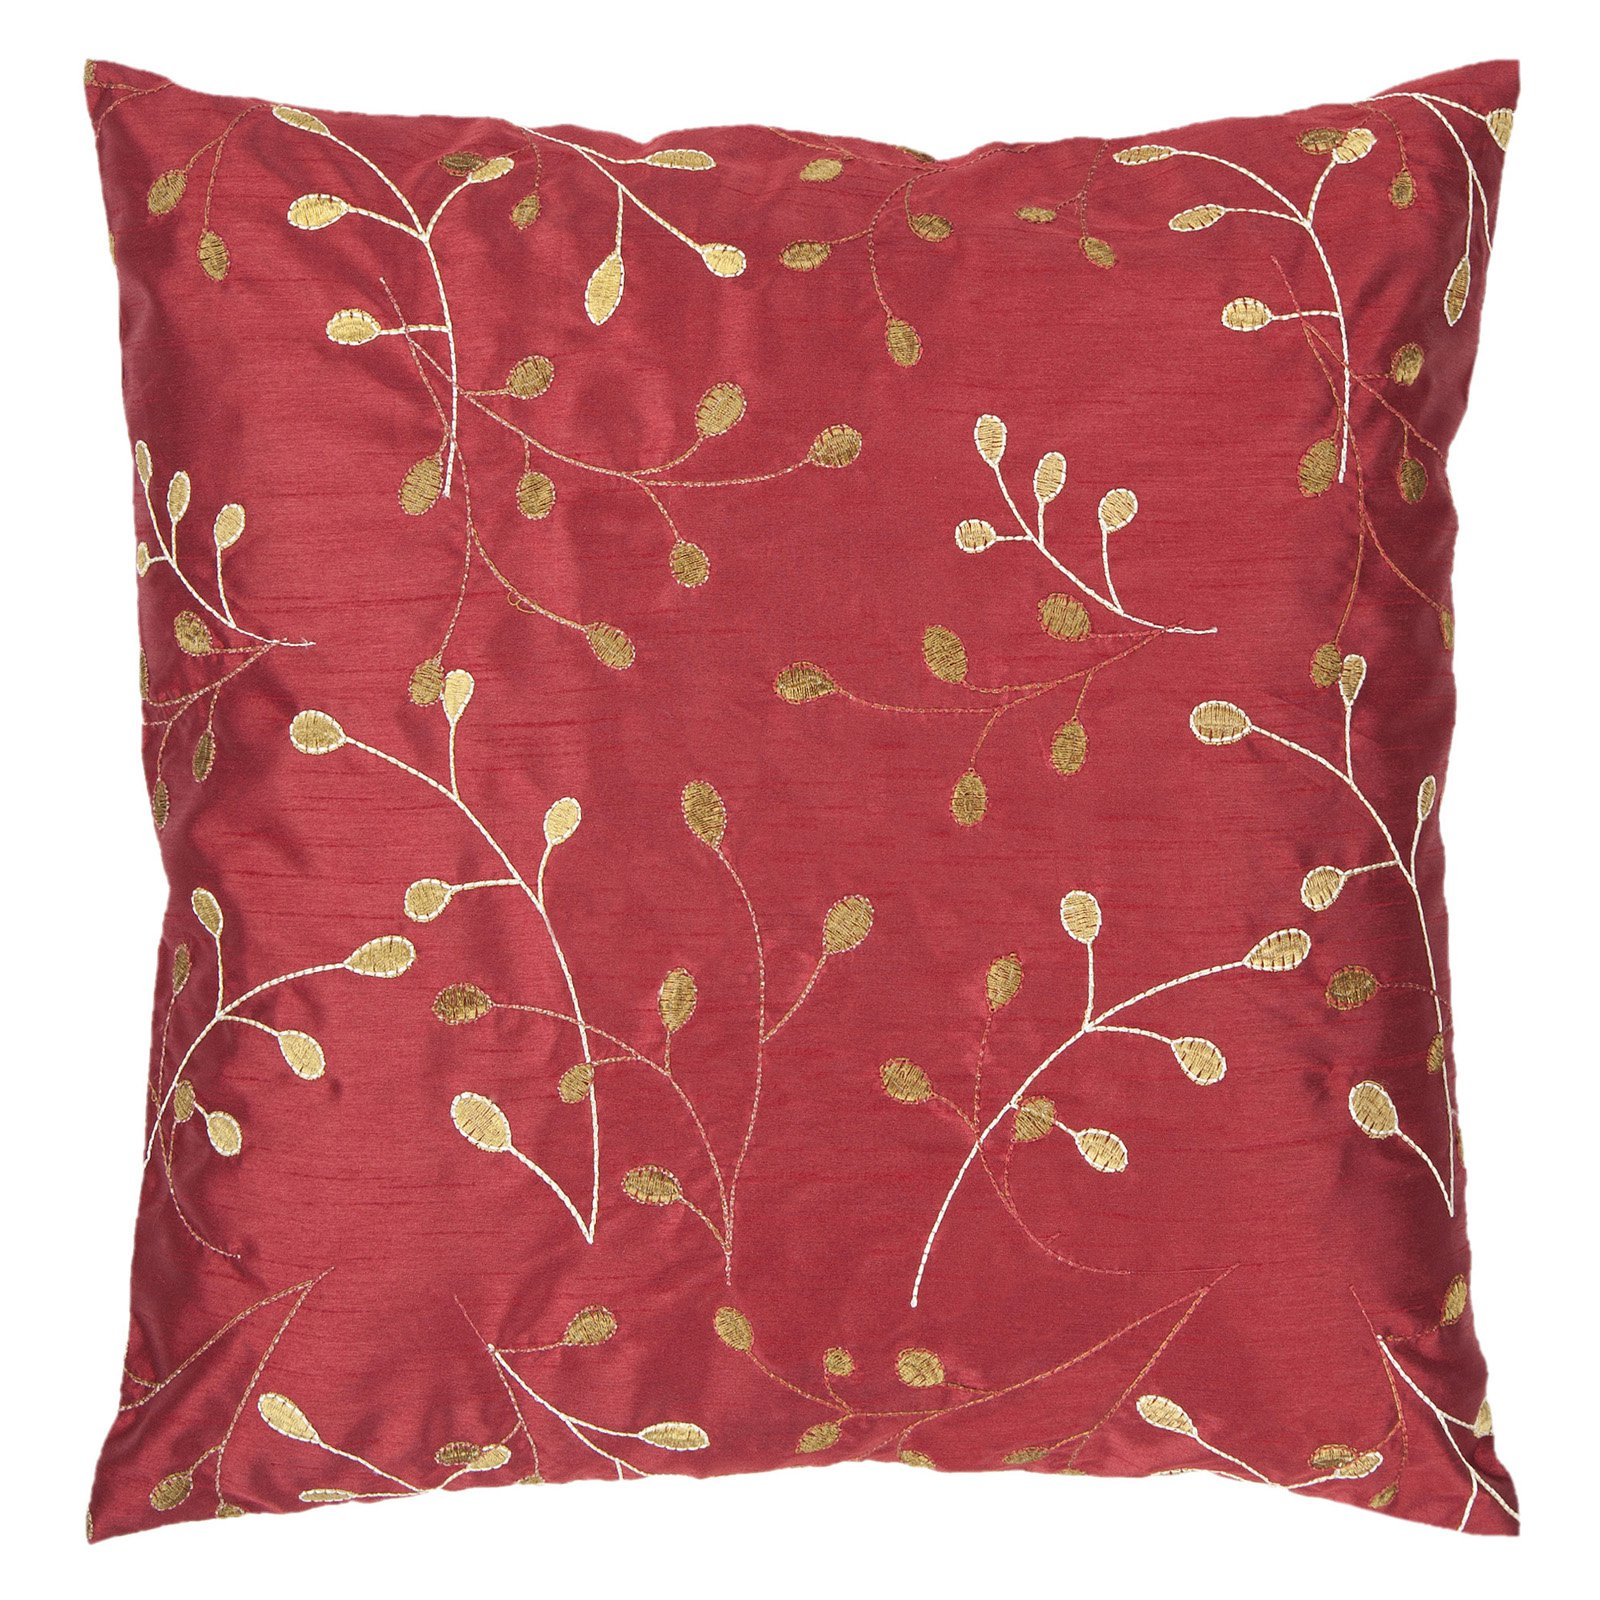 Surya China Vine Decorative Pillow - Venetian Red